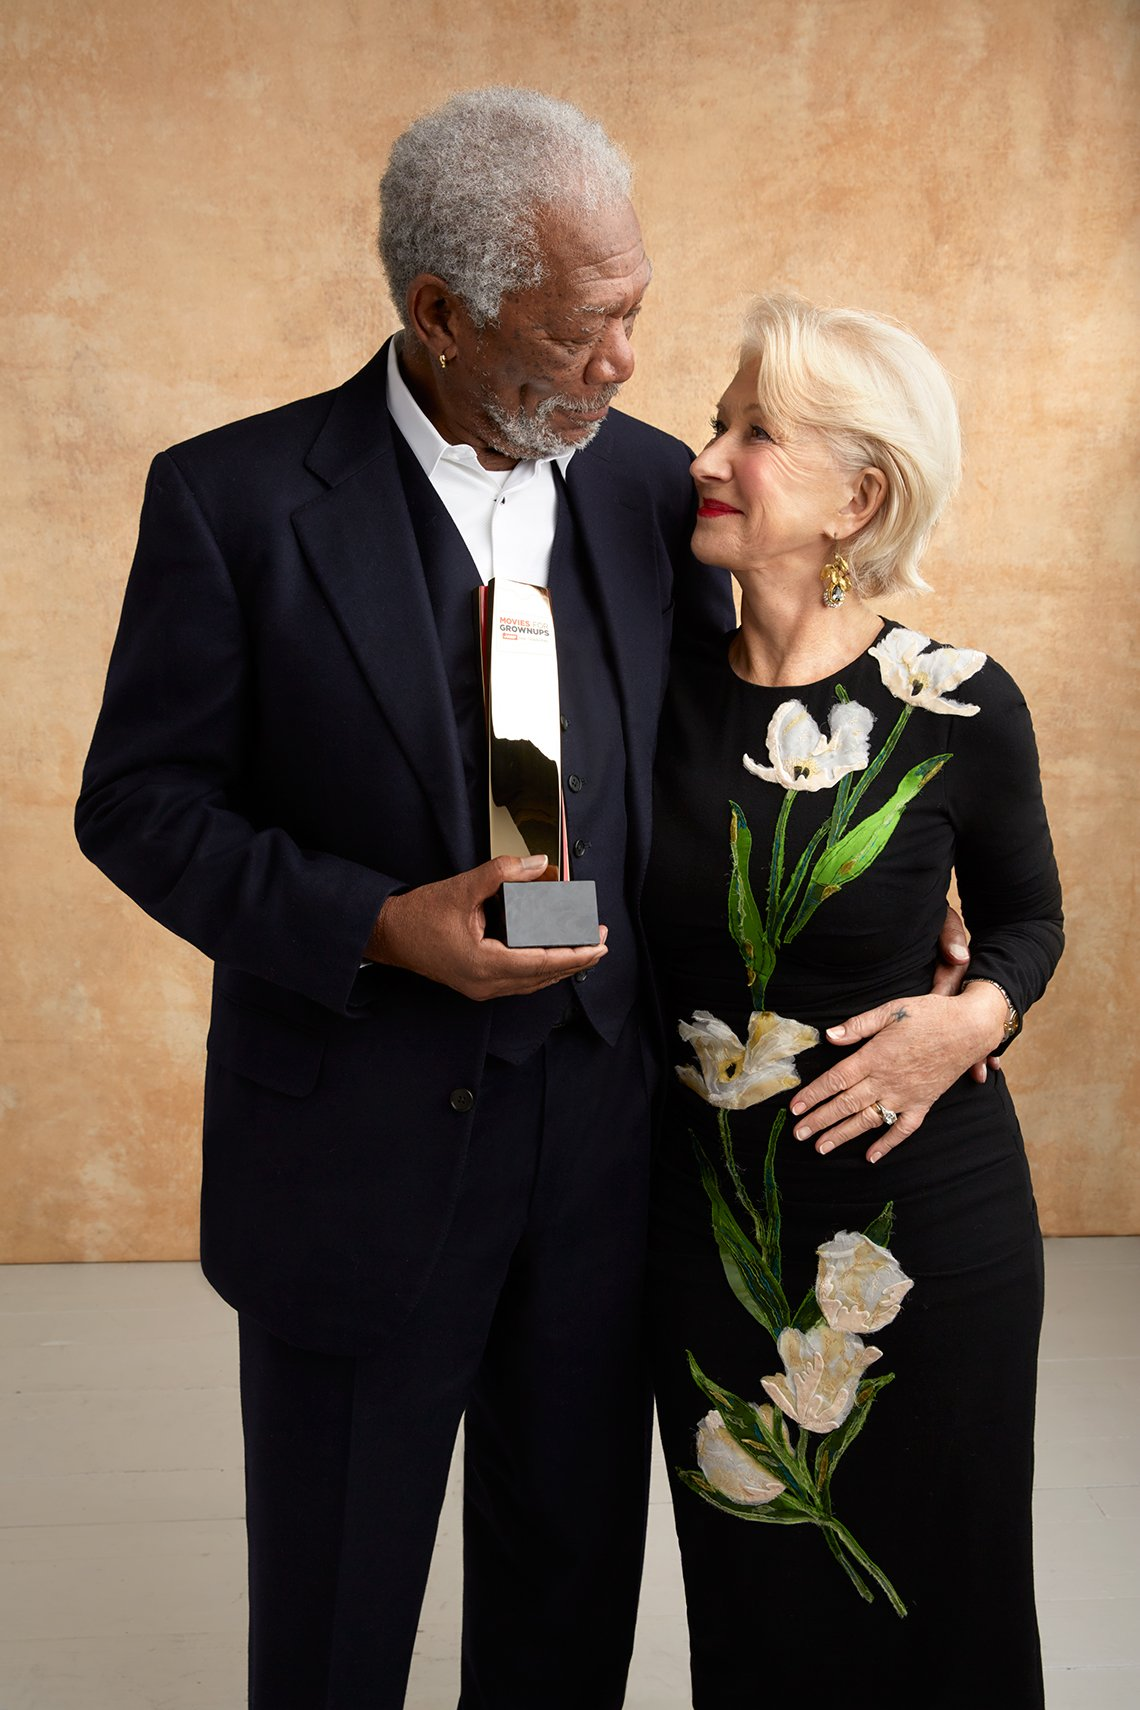 Morgan Freeman and Helen Mirren at the 16th Annual AARP The Magazine's Movies for Grownups Awards